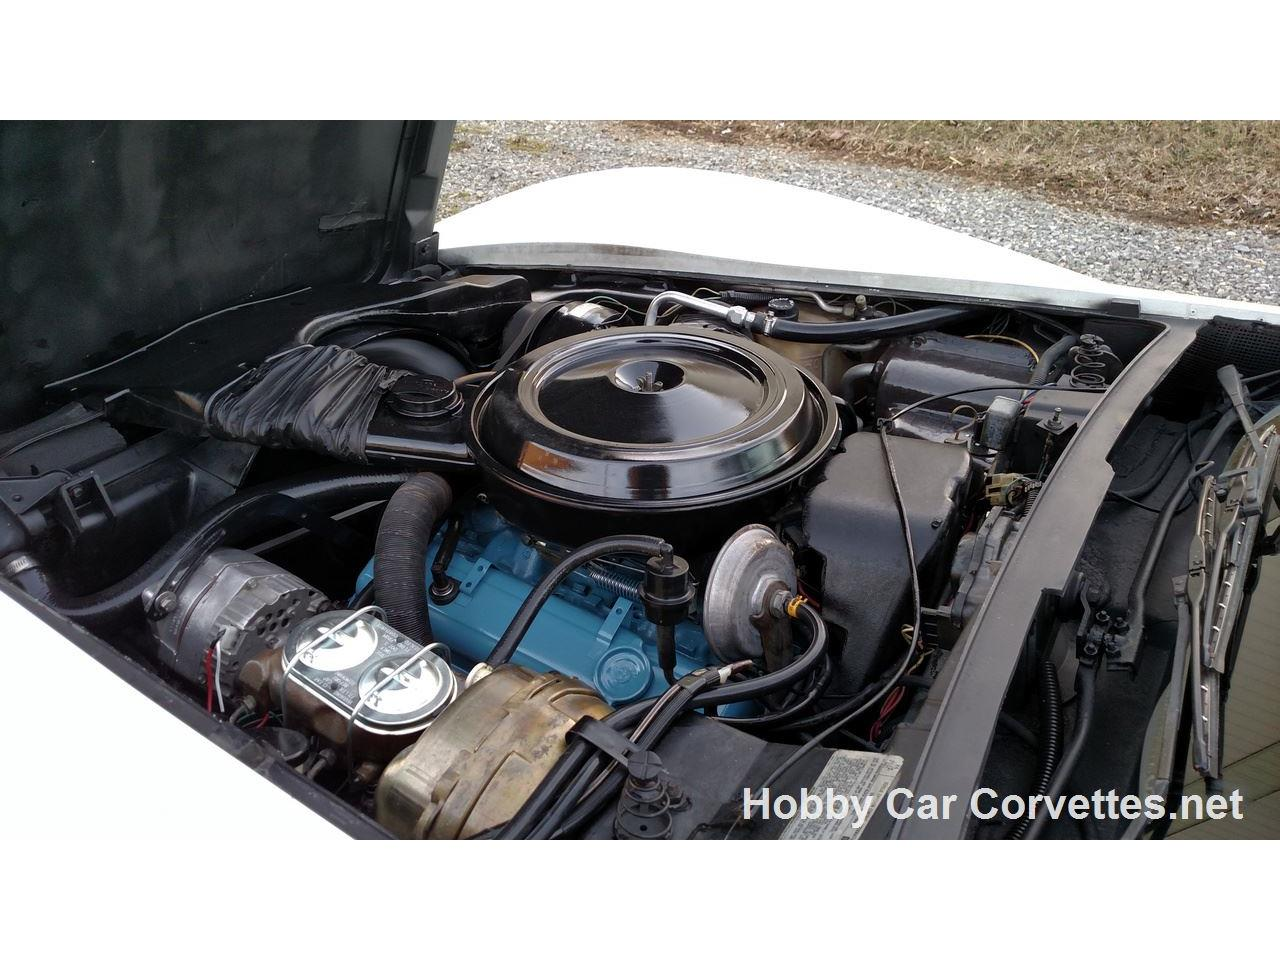 Large Picture of 1979 Chevrolet Corvette located in Martinsburg Pennsylvania Offered by Hobby Car Corvettes - KMMI